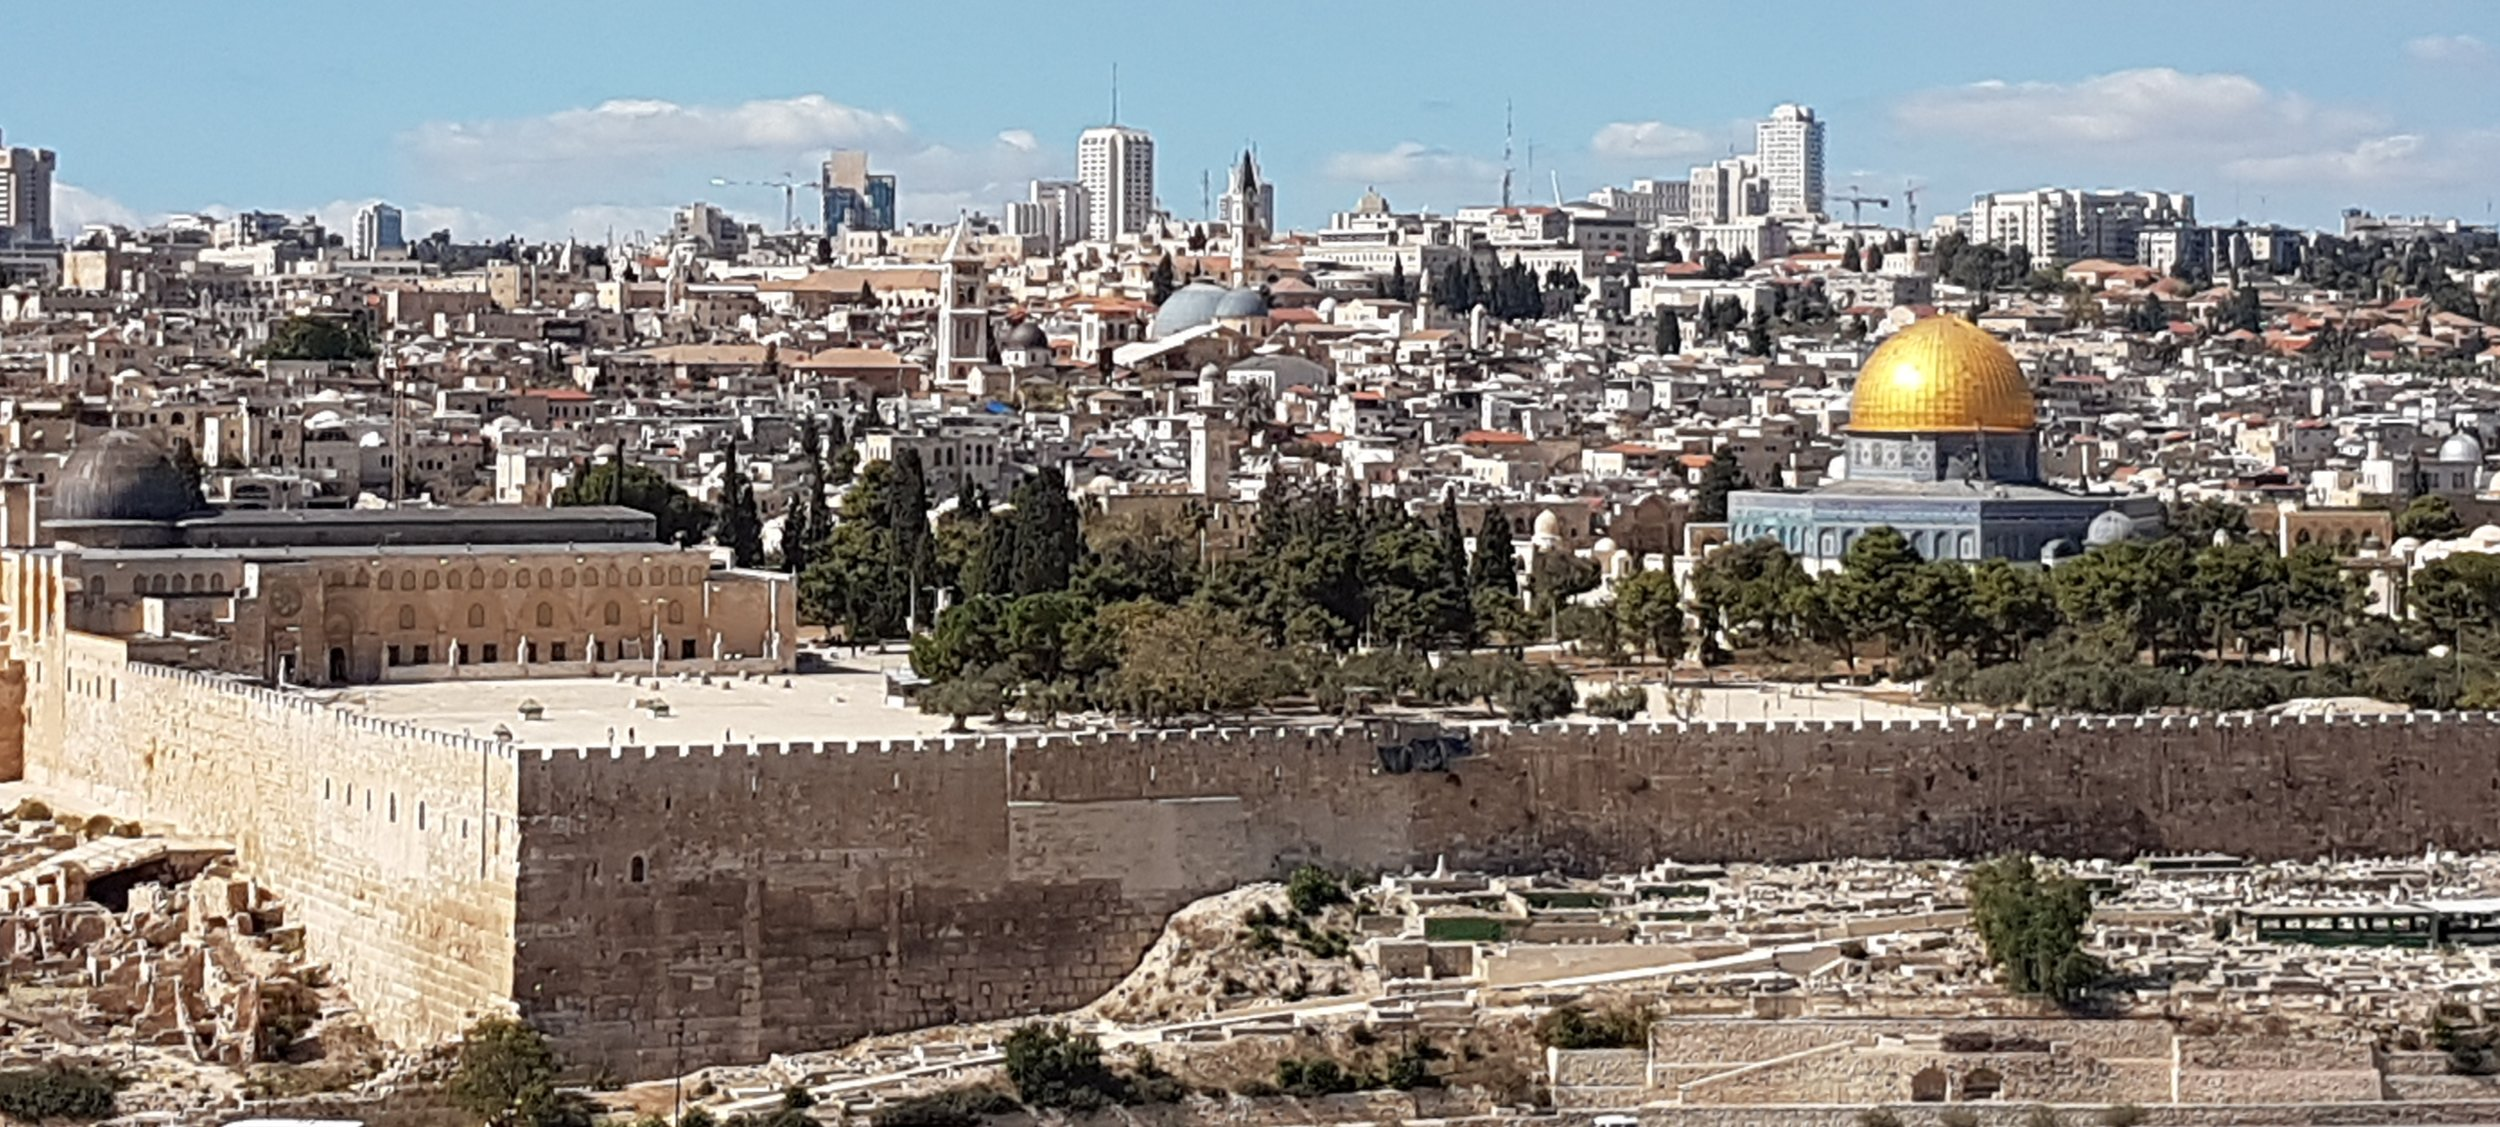 The Old City of Jerusalem viewed from Mount of Olives